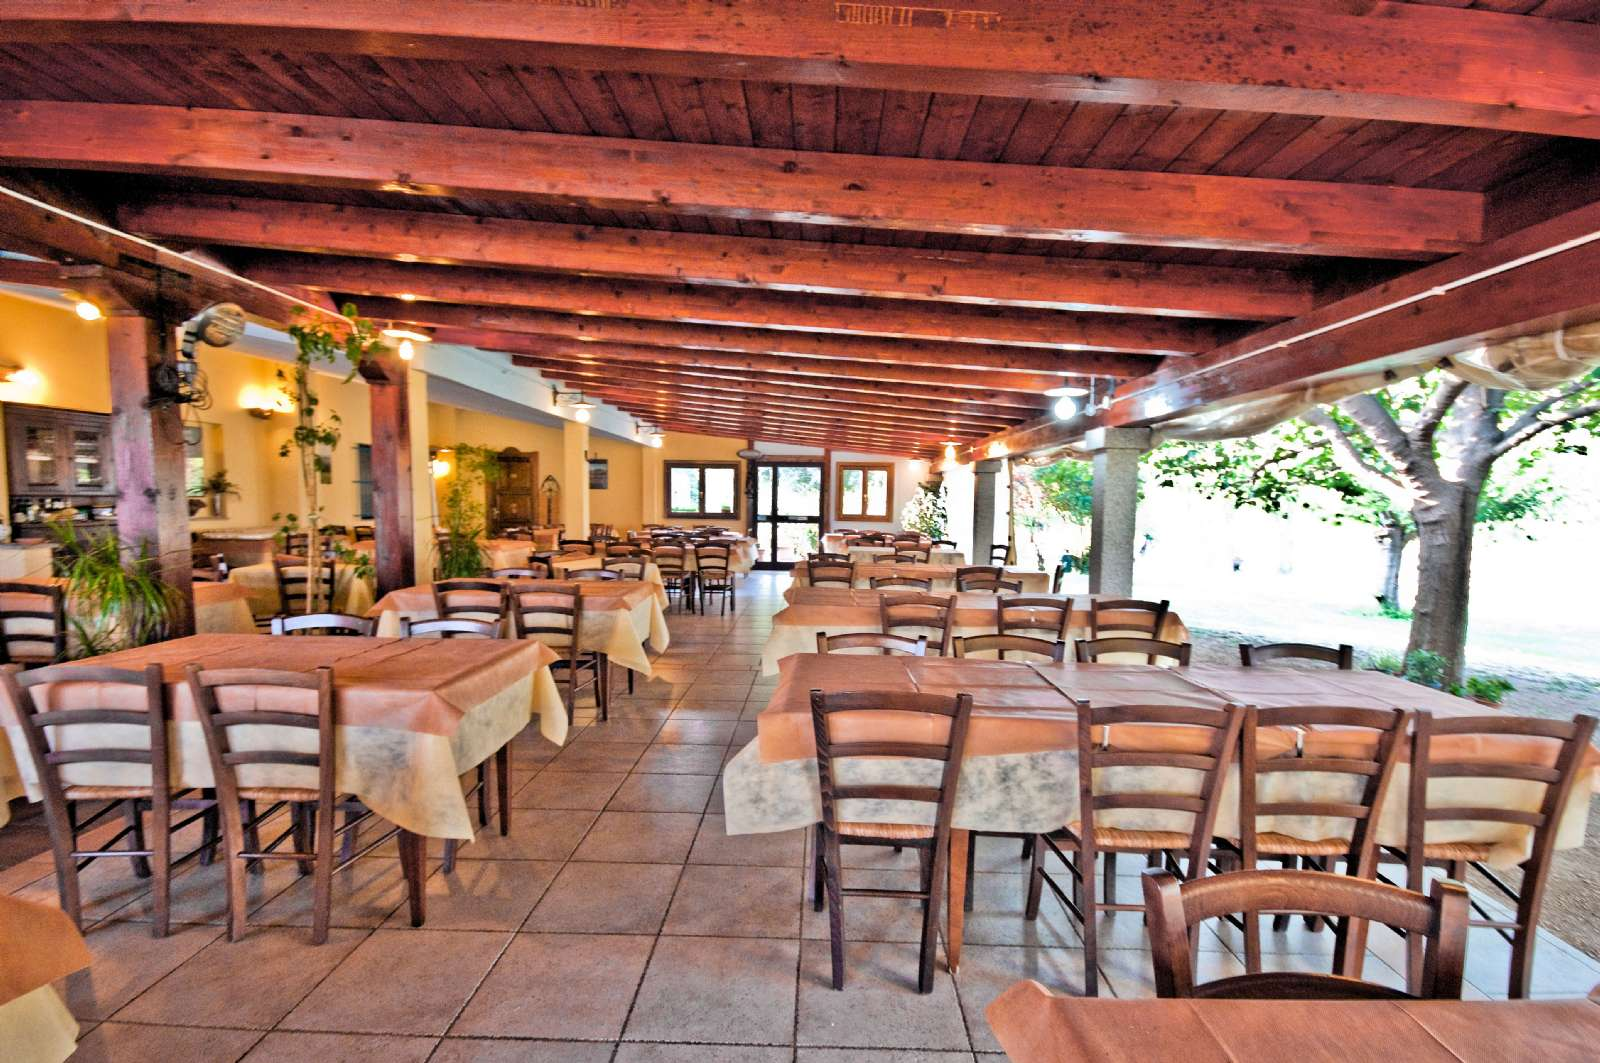 Terrace of the restaurant